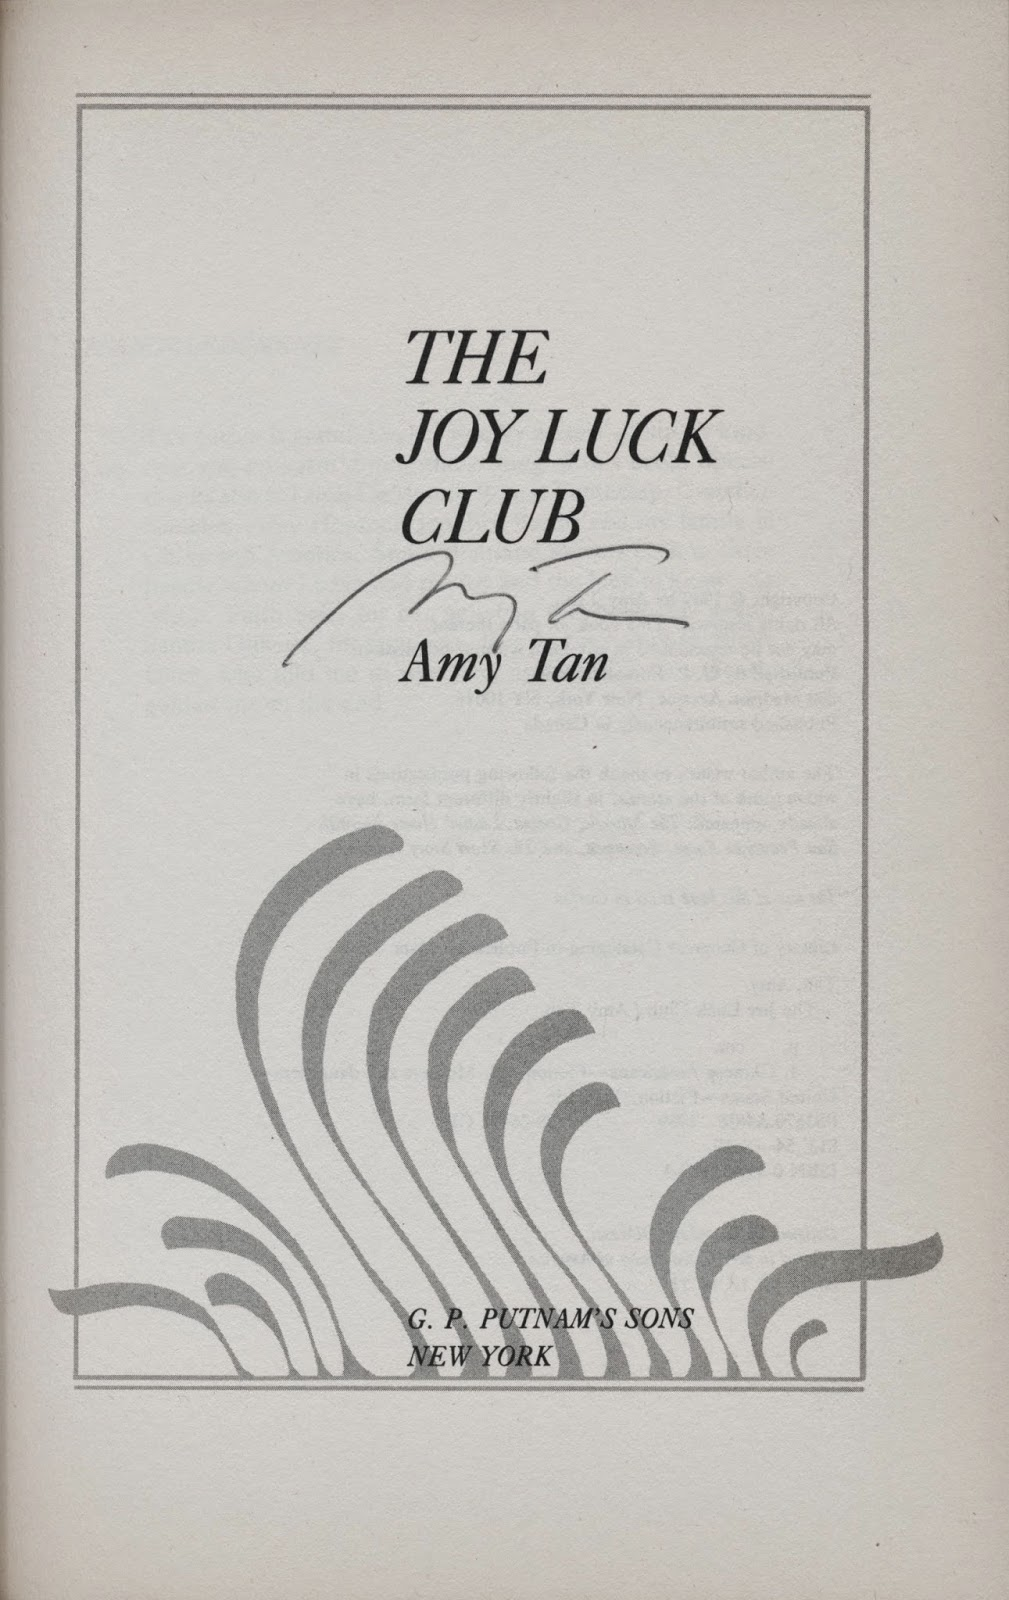 american dream joy luck club Americana: re-naturalizing the tamed garden: nature's power in amy tan's _the joy luck club_ by ildikó limpár / ildikó limpár, assistant professor of english.